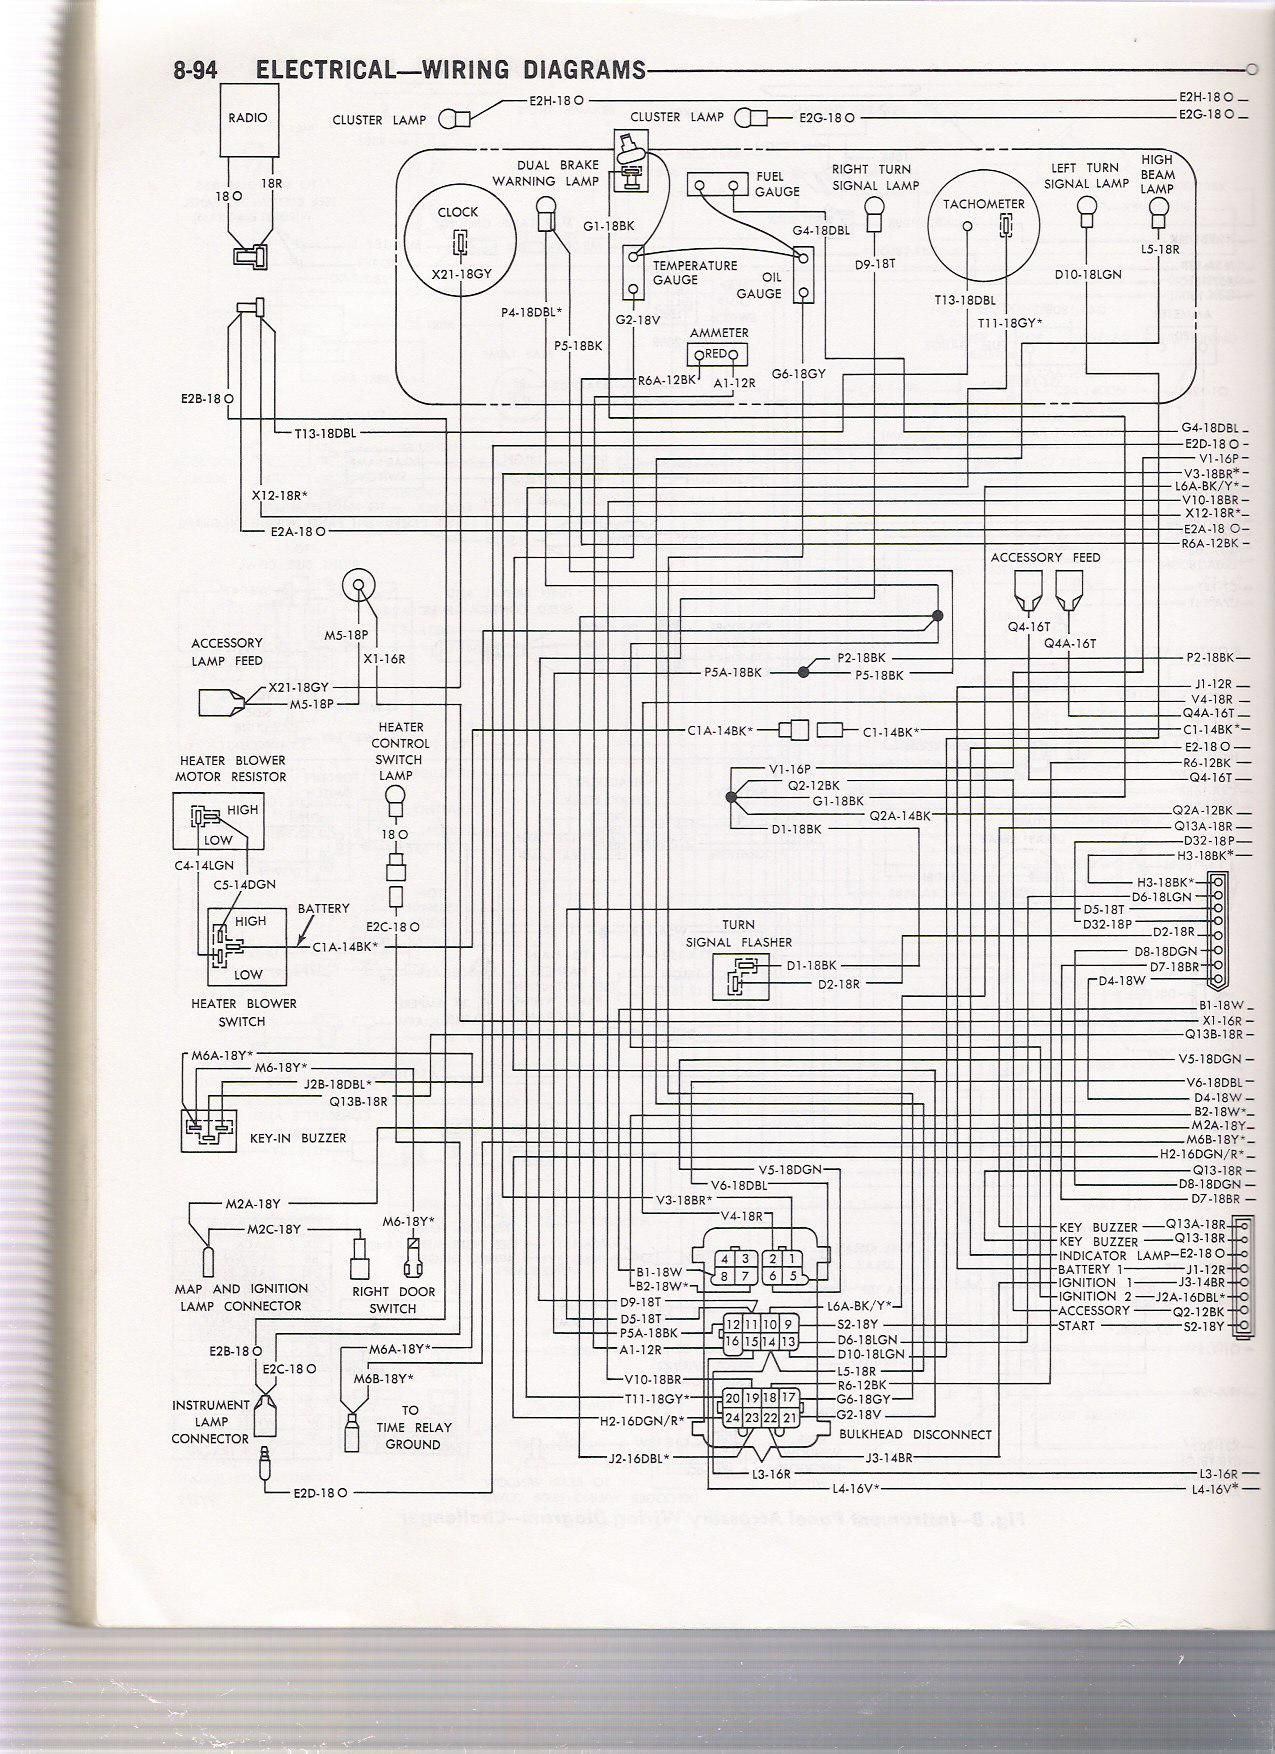 1970 Challenger Dash Wiring Diagram Books Of Emg Archive For 70 E Body Rallye Best Moparts Tech Rh Board Org